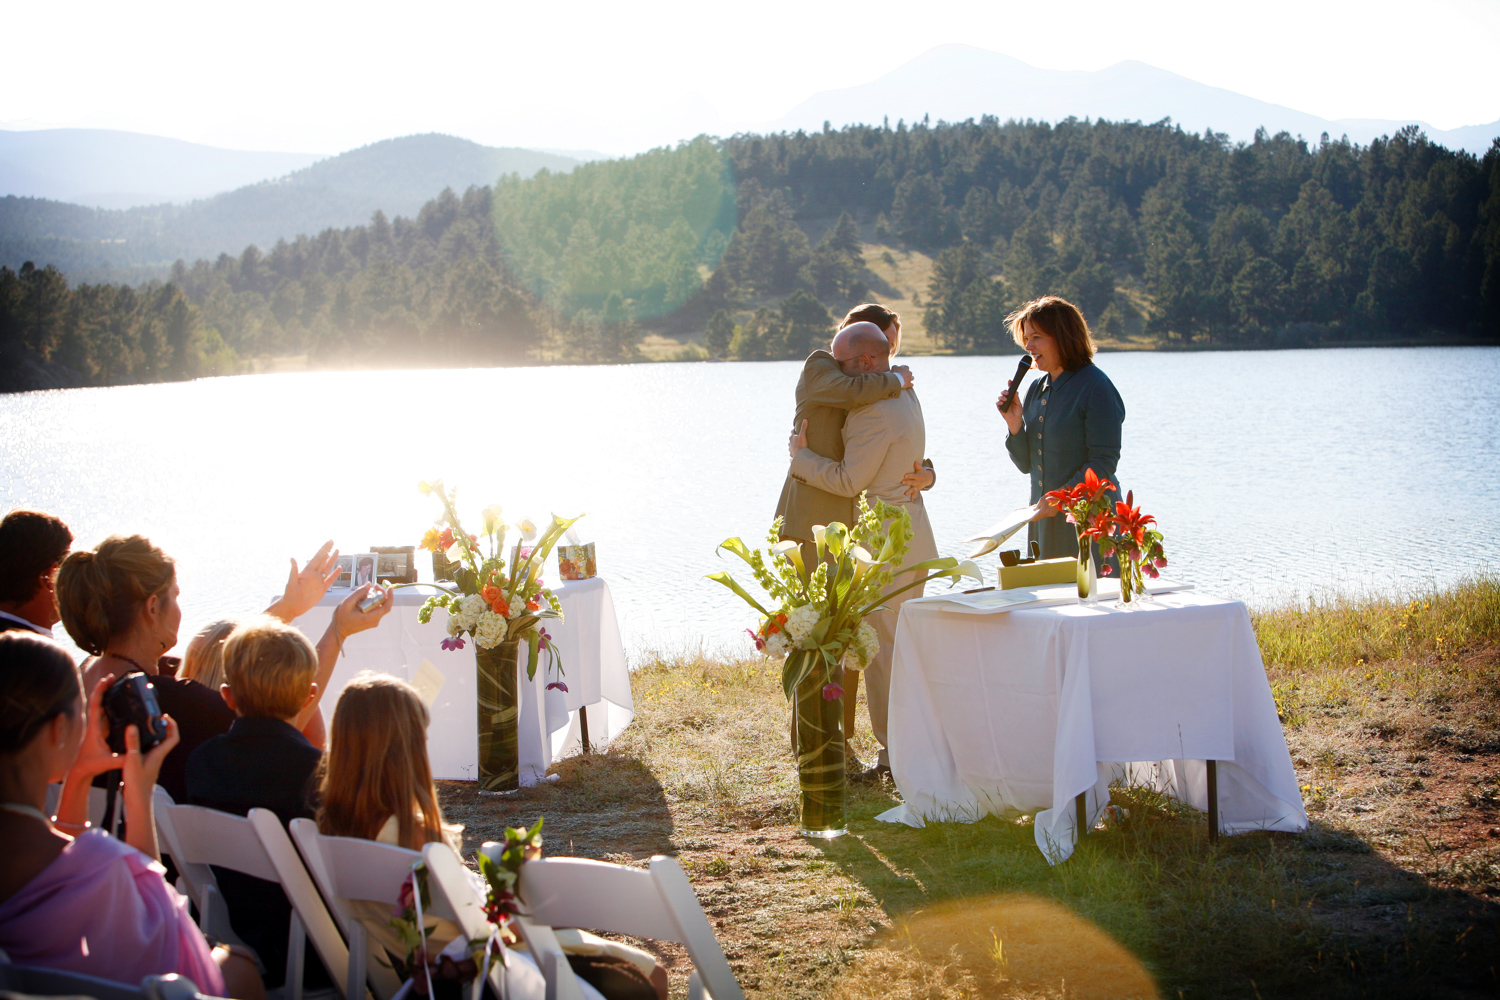 Gold_Lake_Resort_Wedding_045.JPG